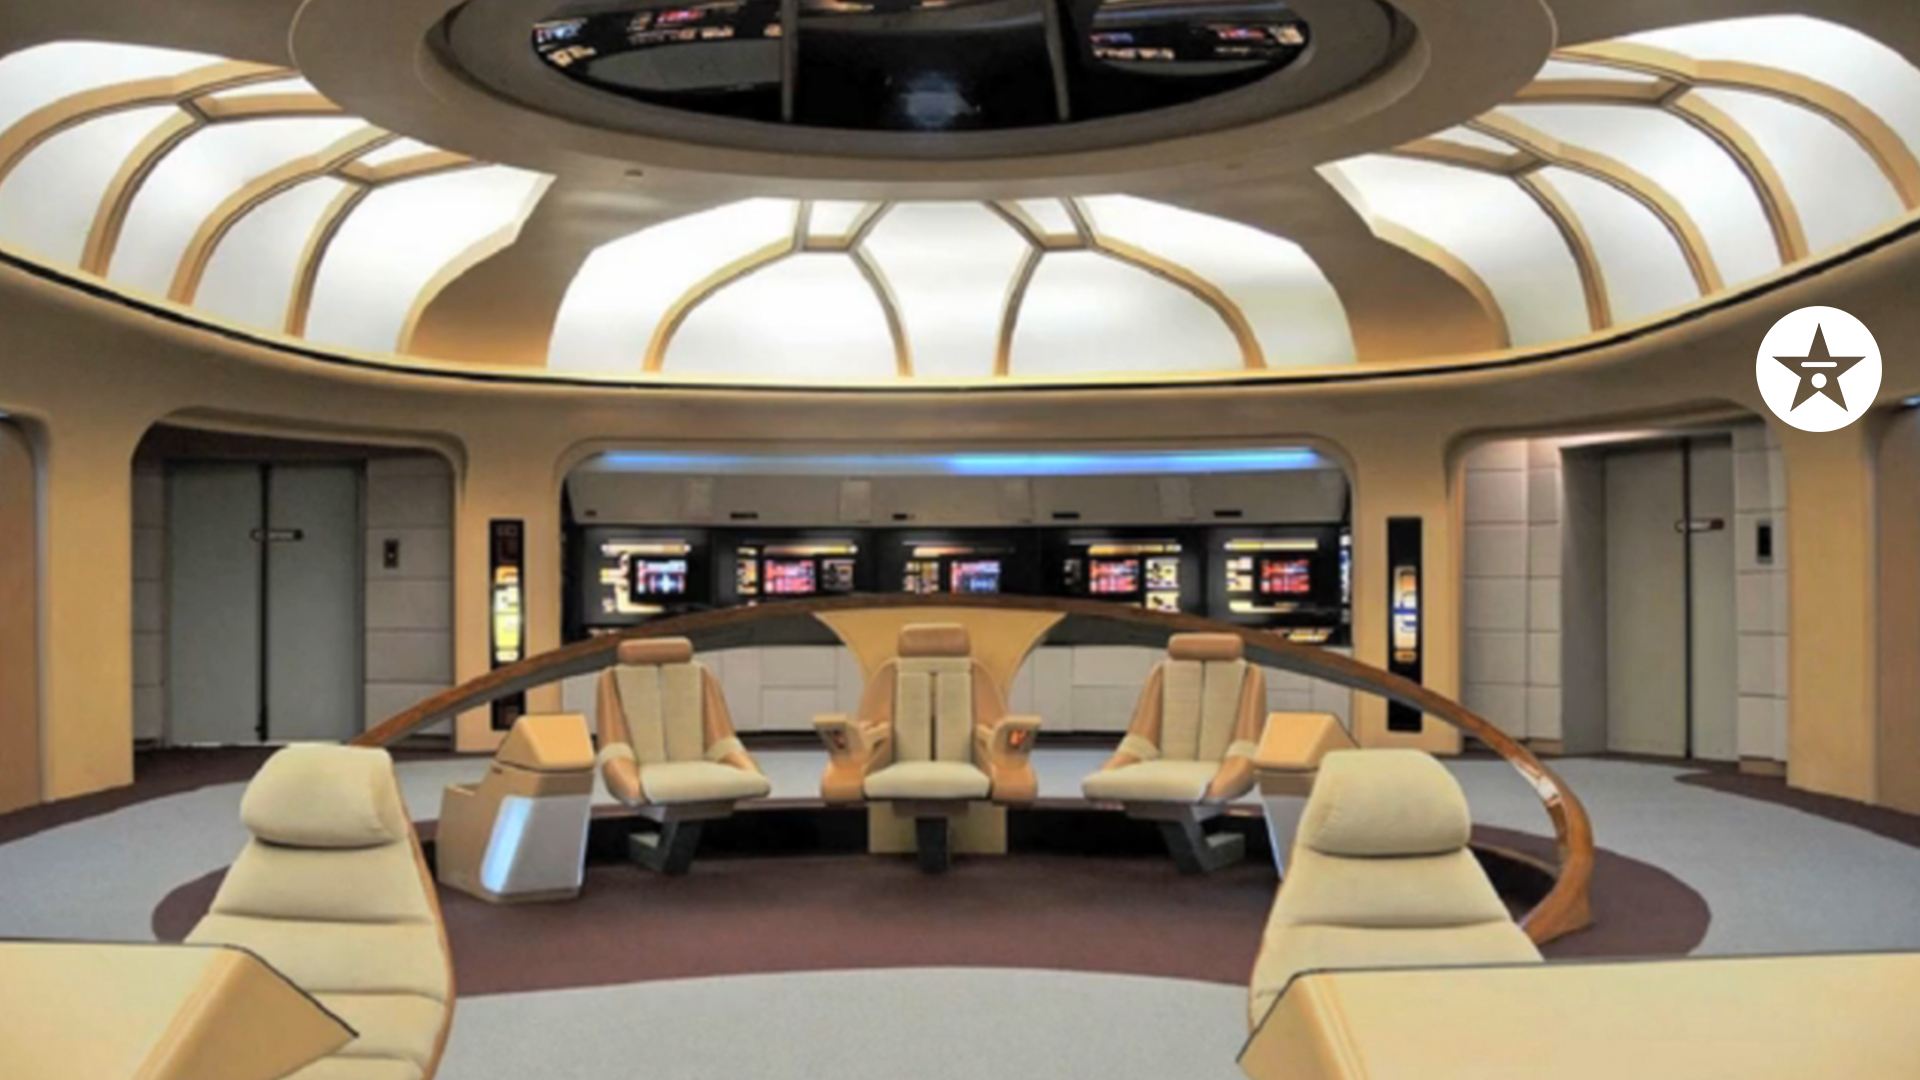 star trek bridge zoom background